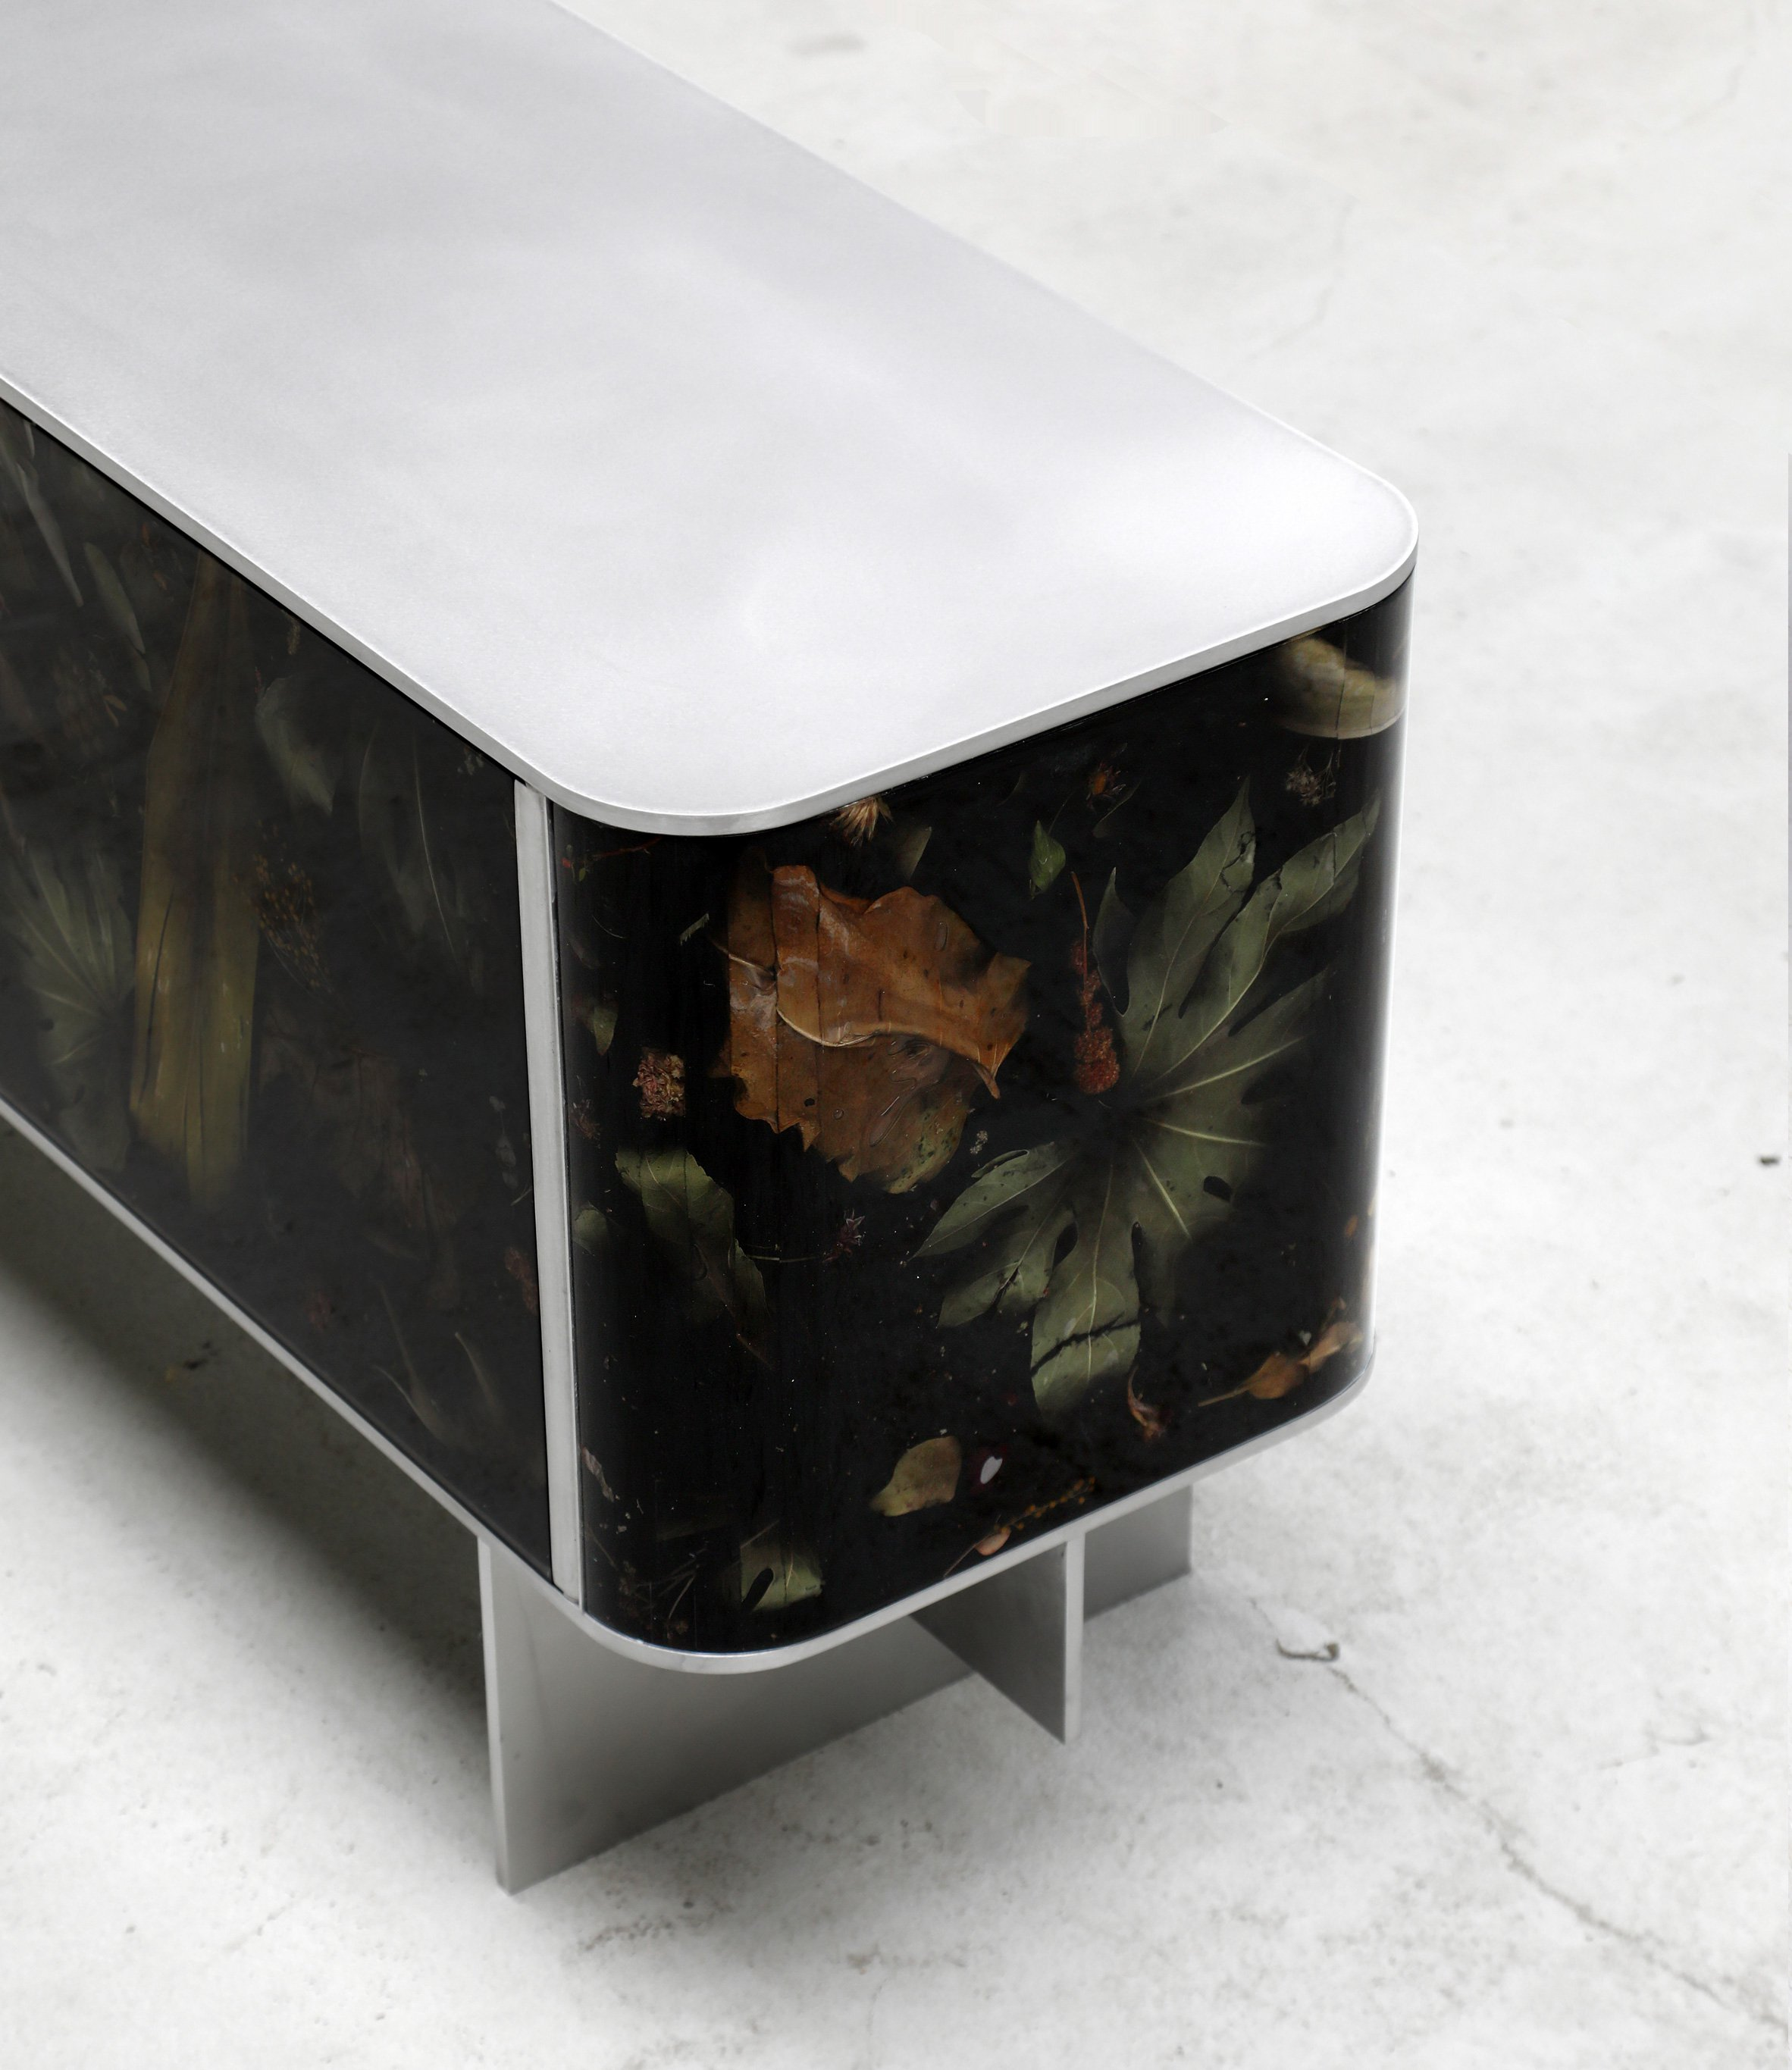 The contrast between coated steel and moody resin and flora parts is amazing